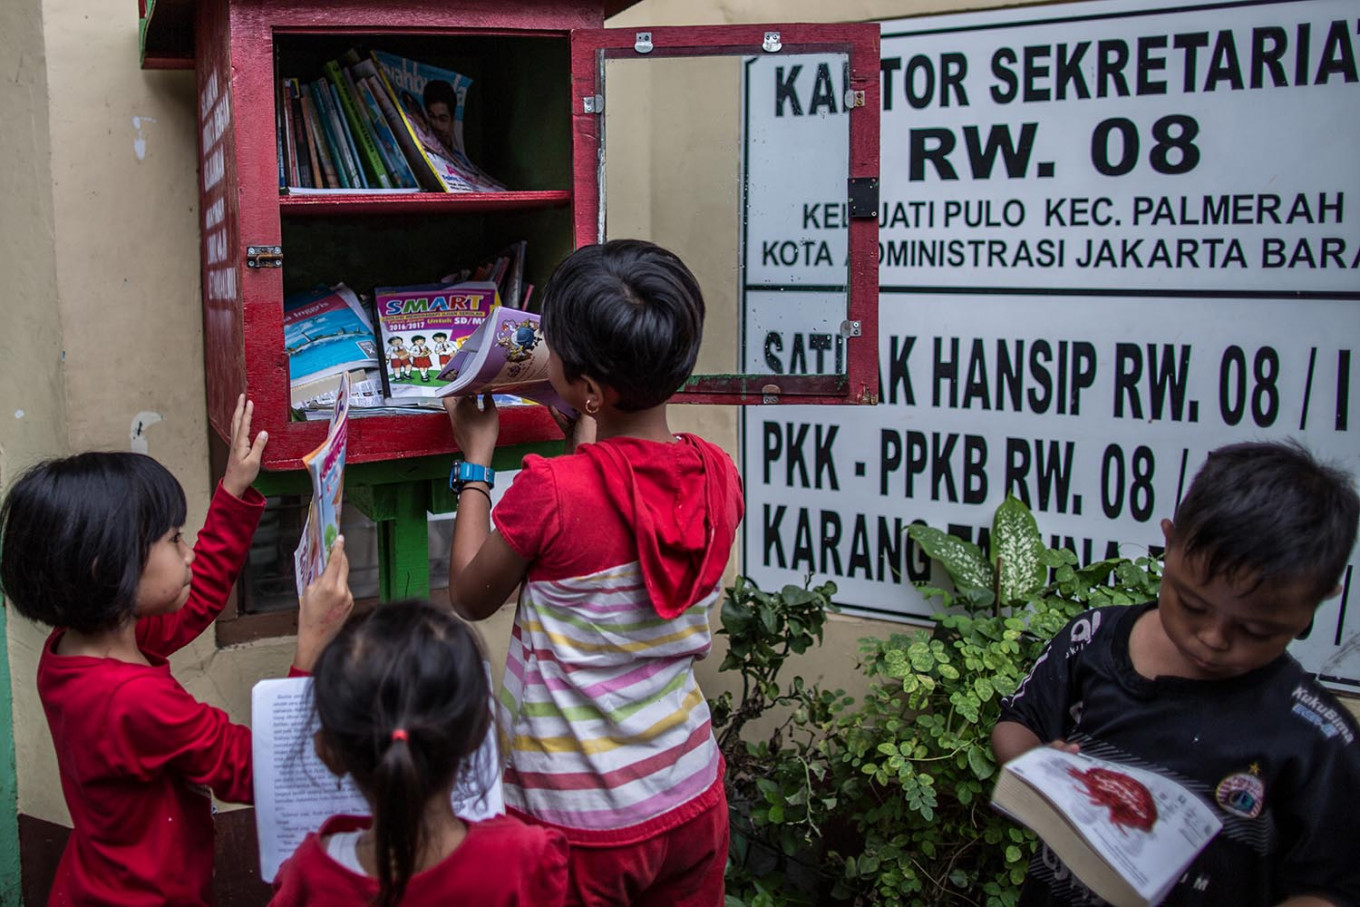 Children browse through books from a book-sharing box in Jatipulo subdistrict, West Jakarta. The books have all been donated to the community in its initiative to turn the neighborhood into a literacy kampung. JP/Afriadi Hikmal